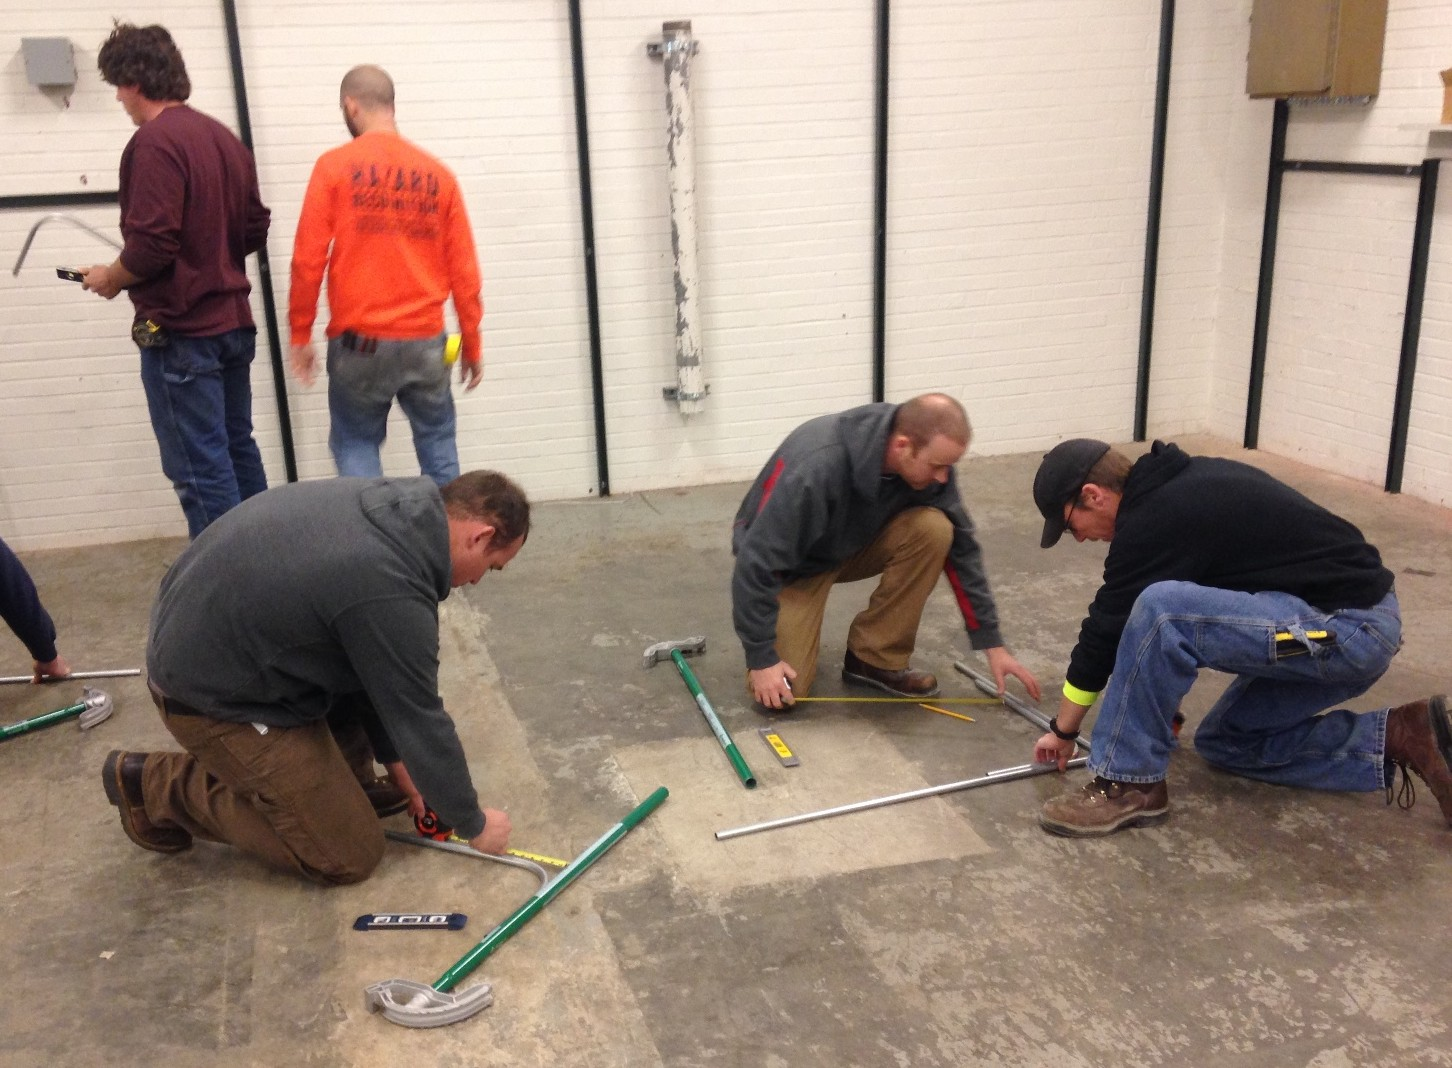 Apprentices receiving training at the NECA/IBEW Electrical JATC.